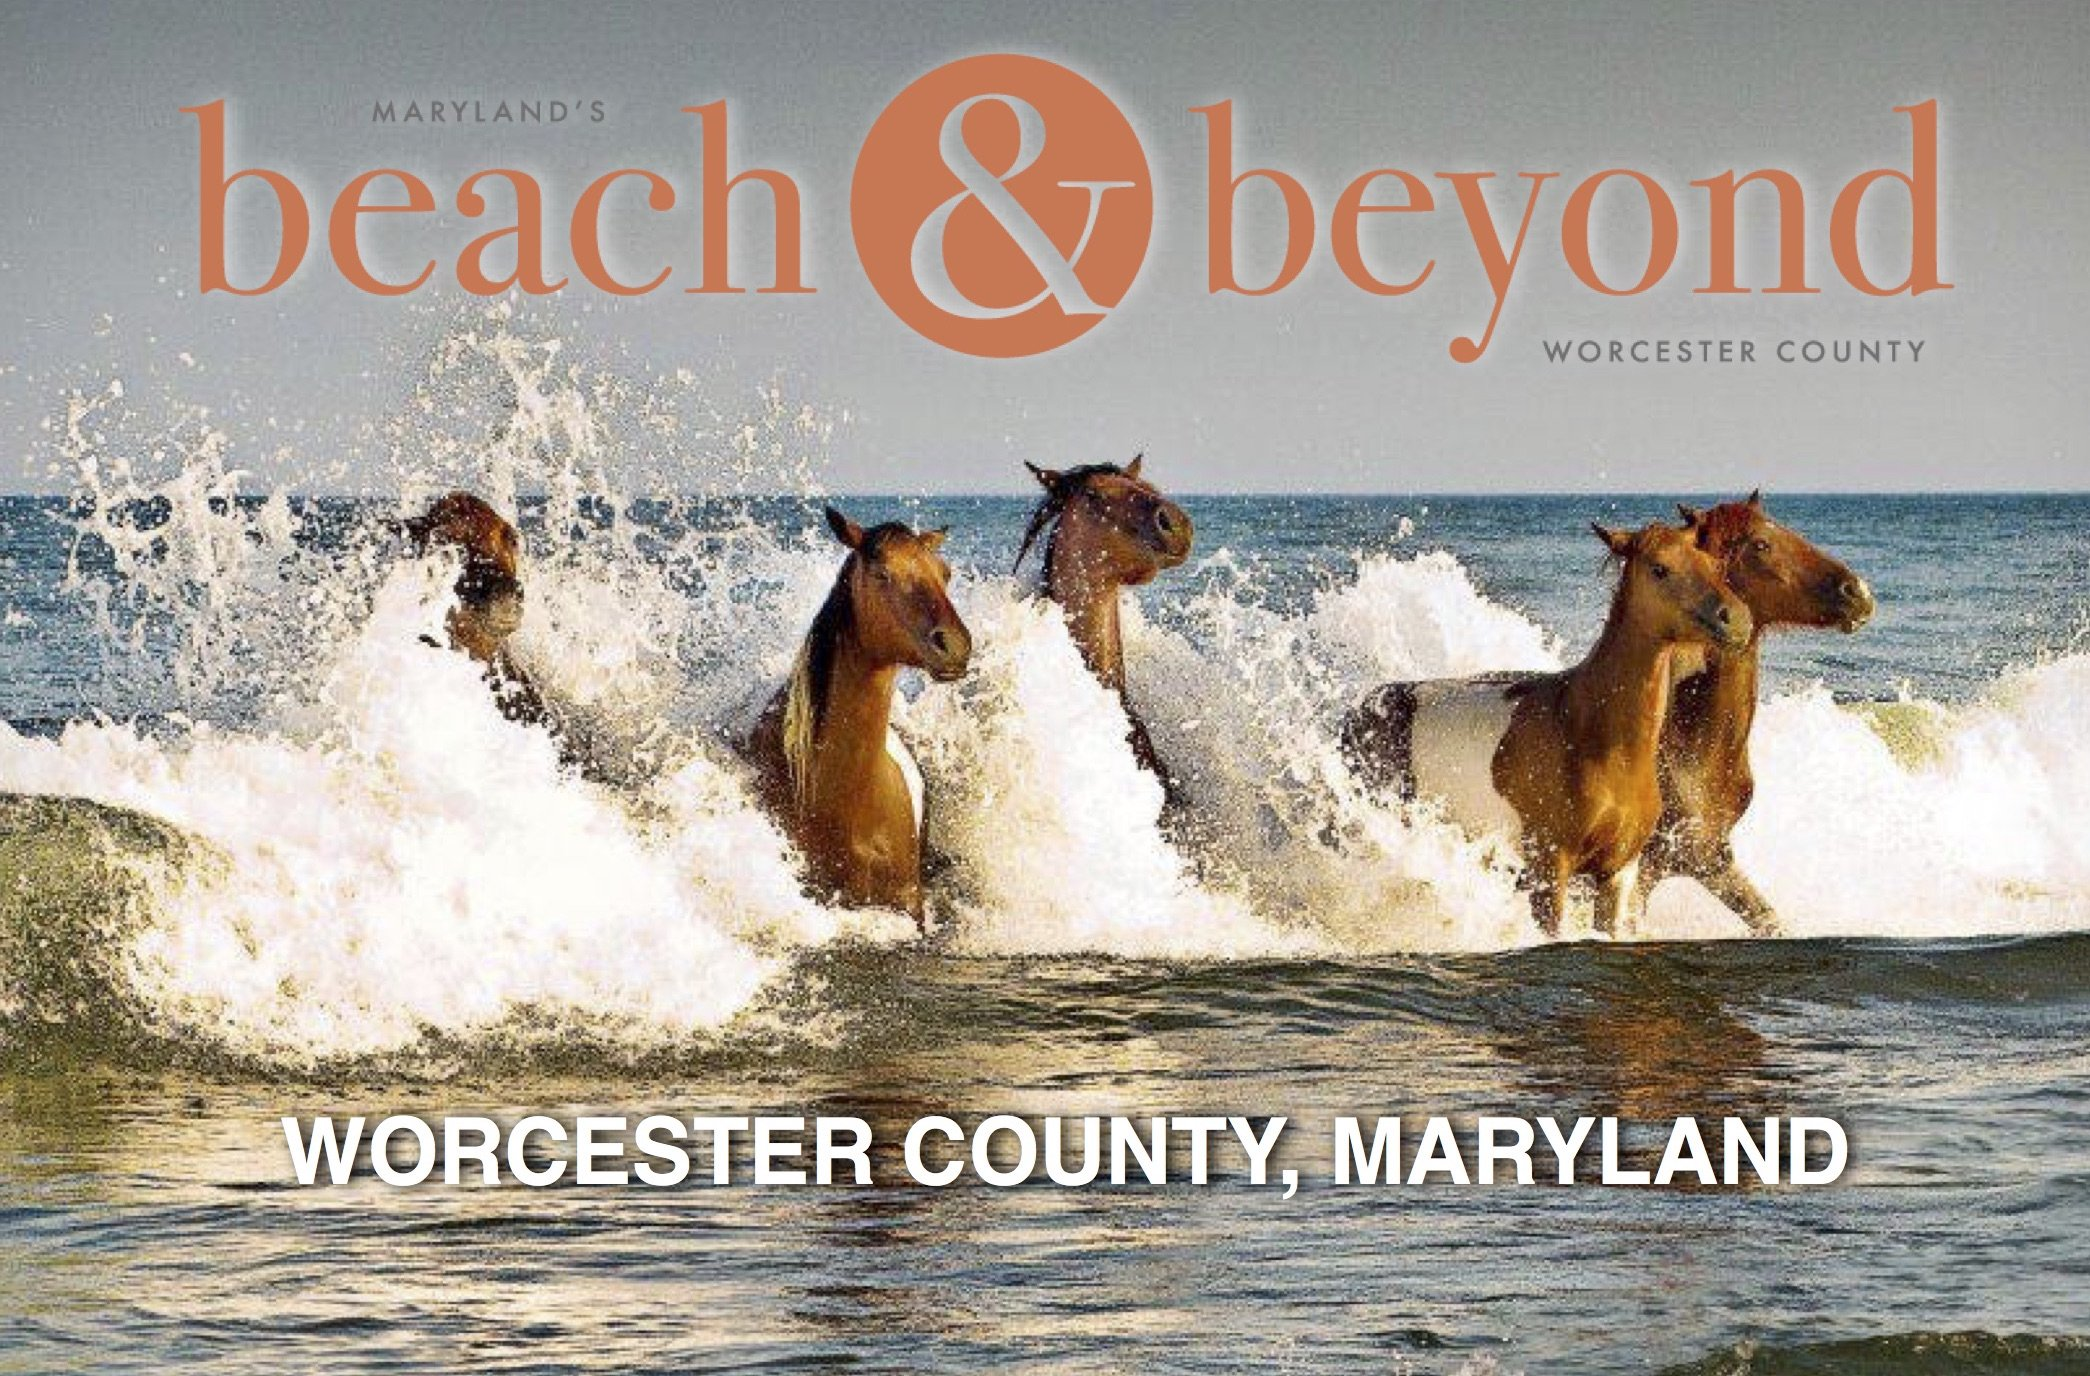 Maryland's Beach & Beyond